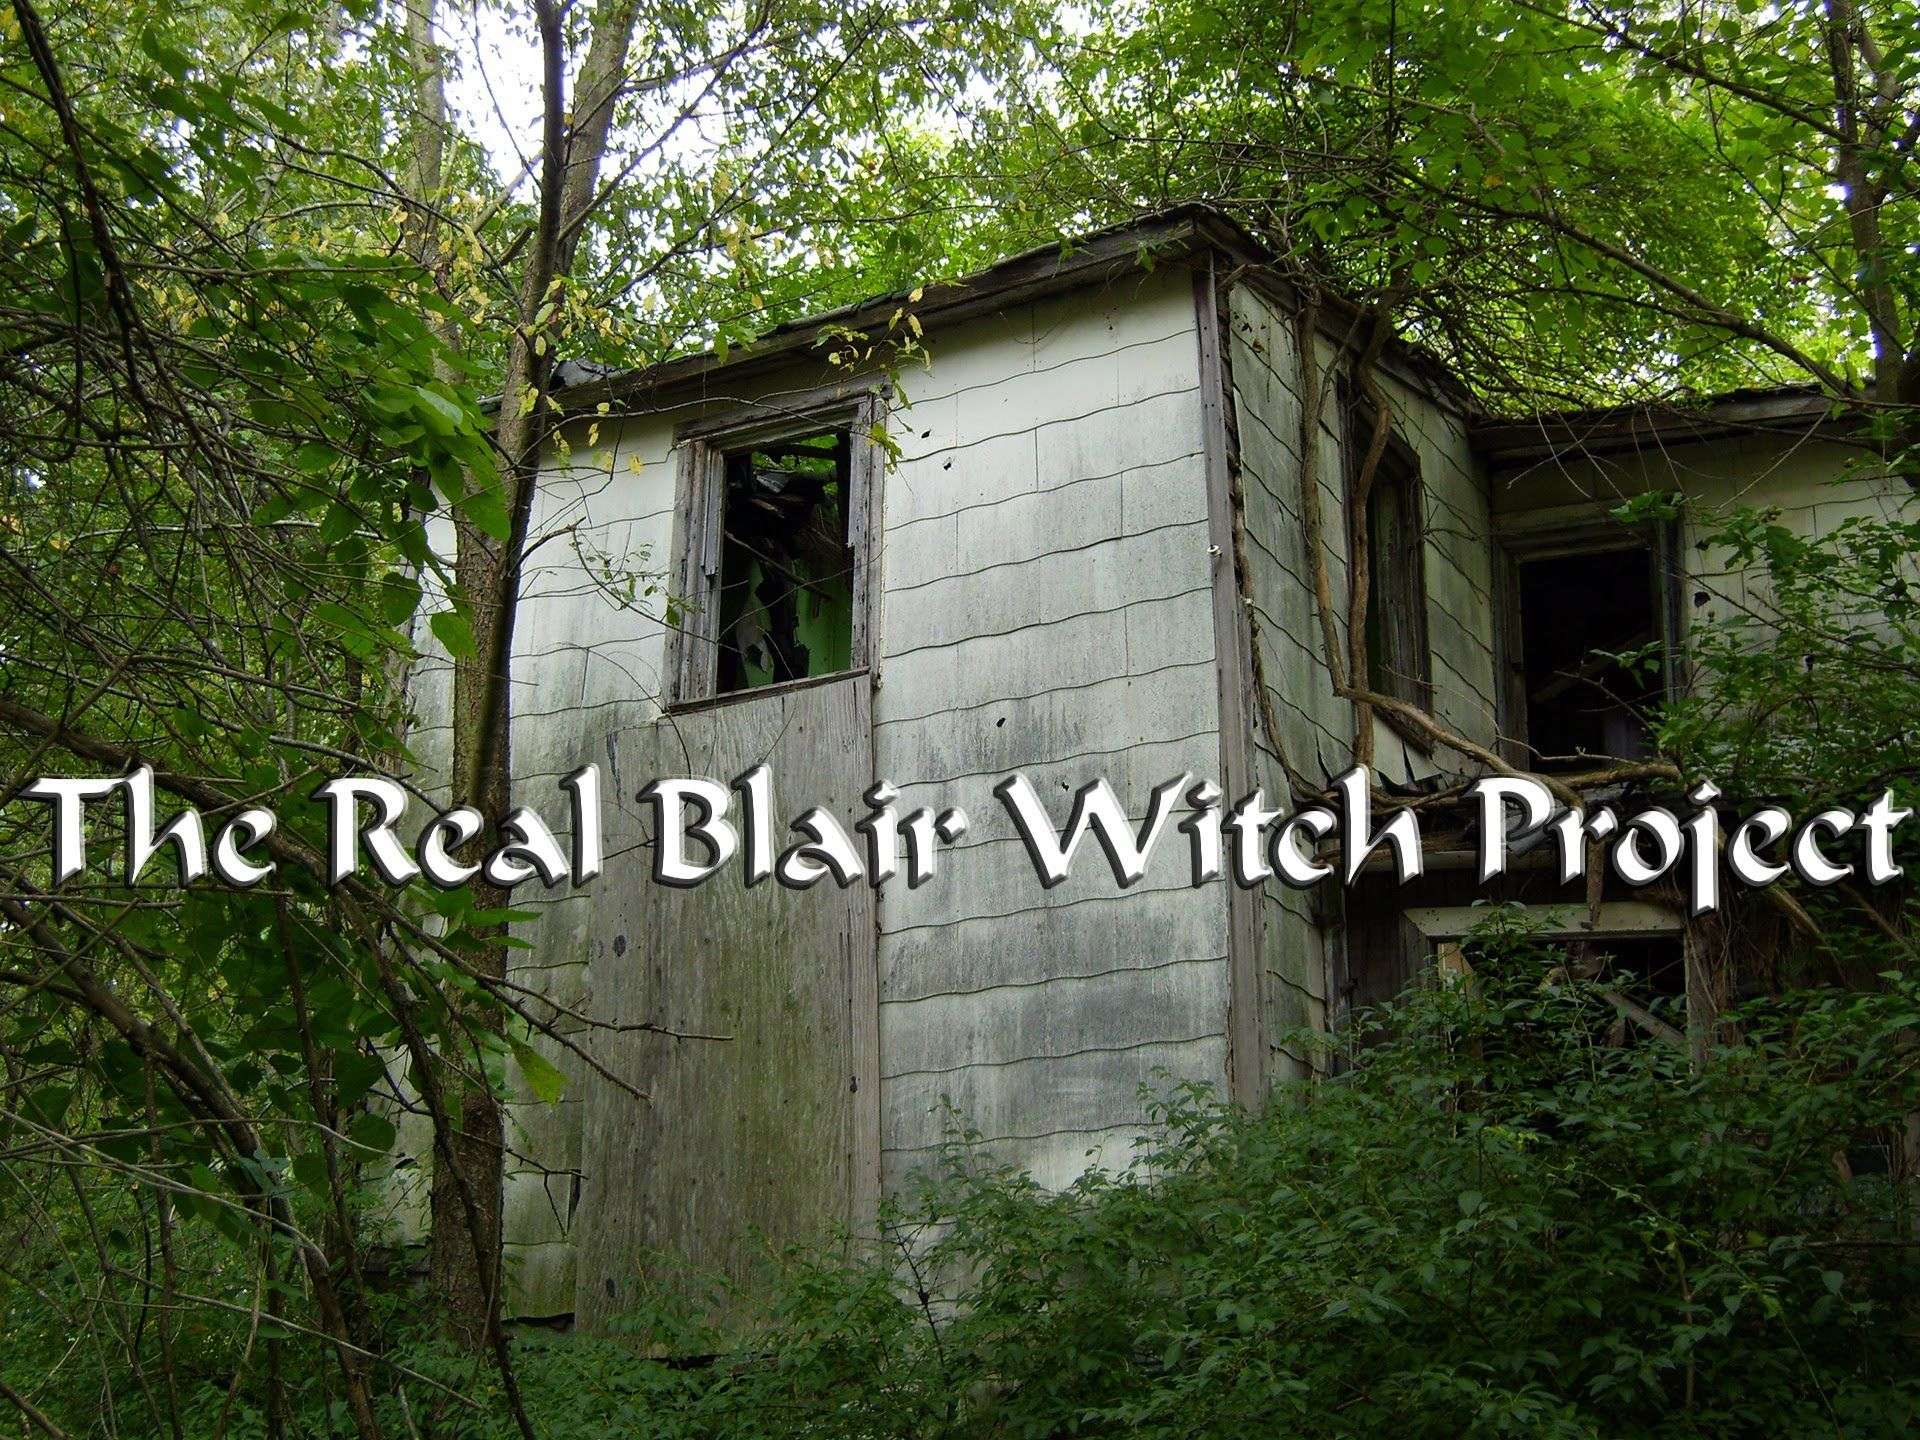 blair witch project location The blair witch project is a 1999 american independent supernatural horror movieit was written and directed by daniel myrick and eduardo sánchez and produced by the haxan films production company.